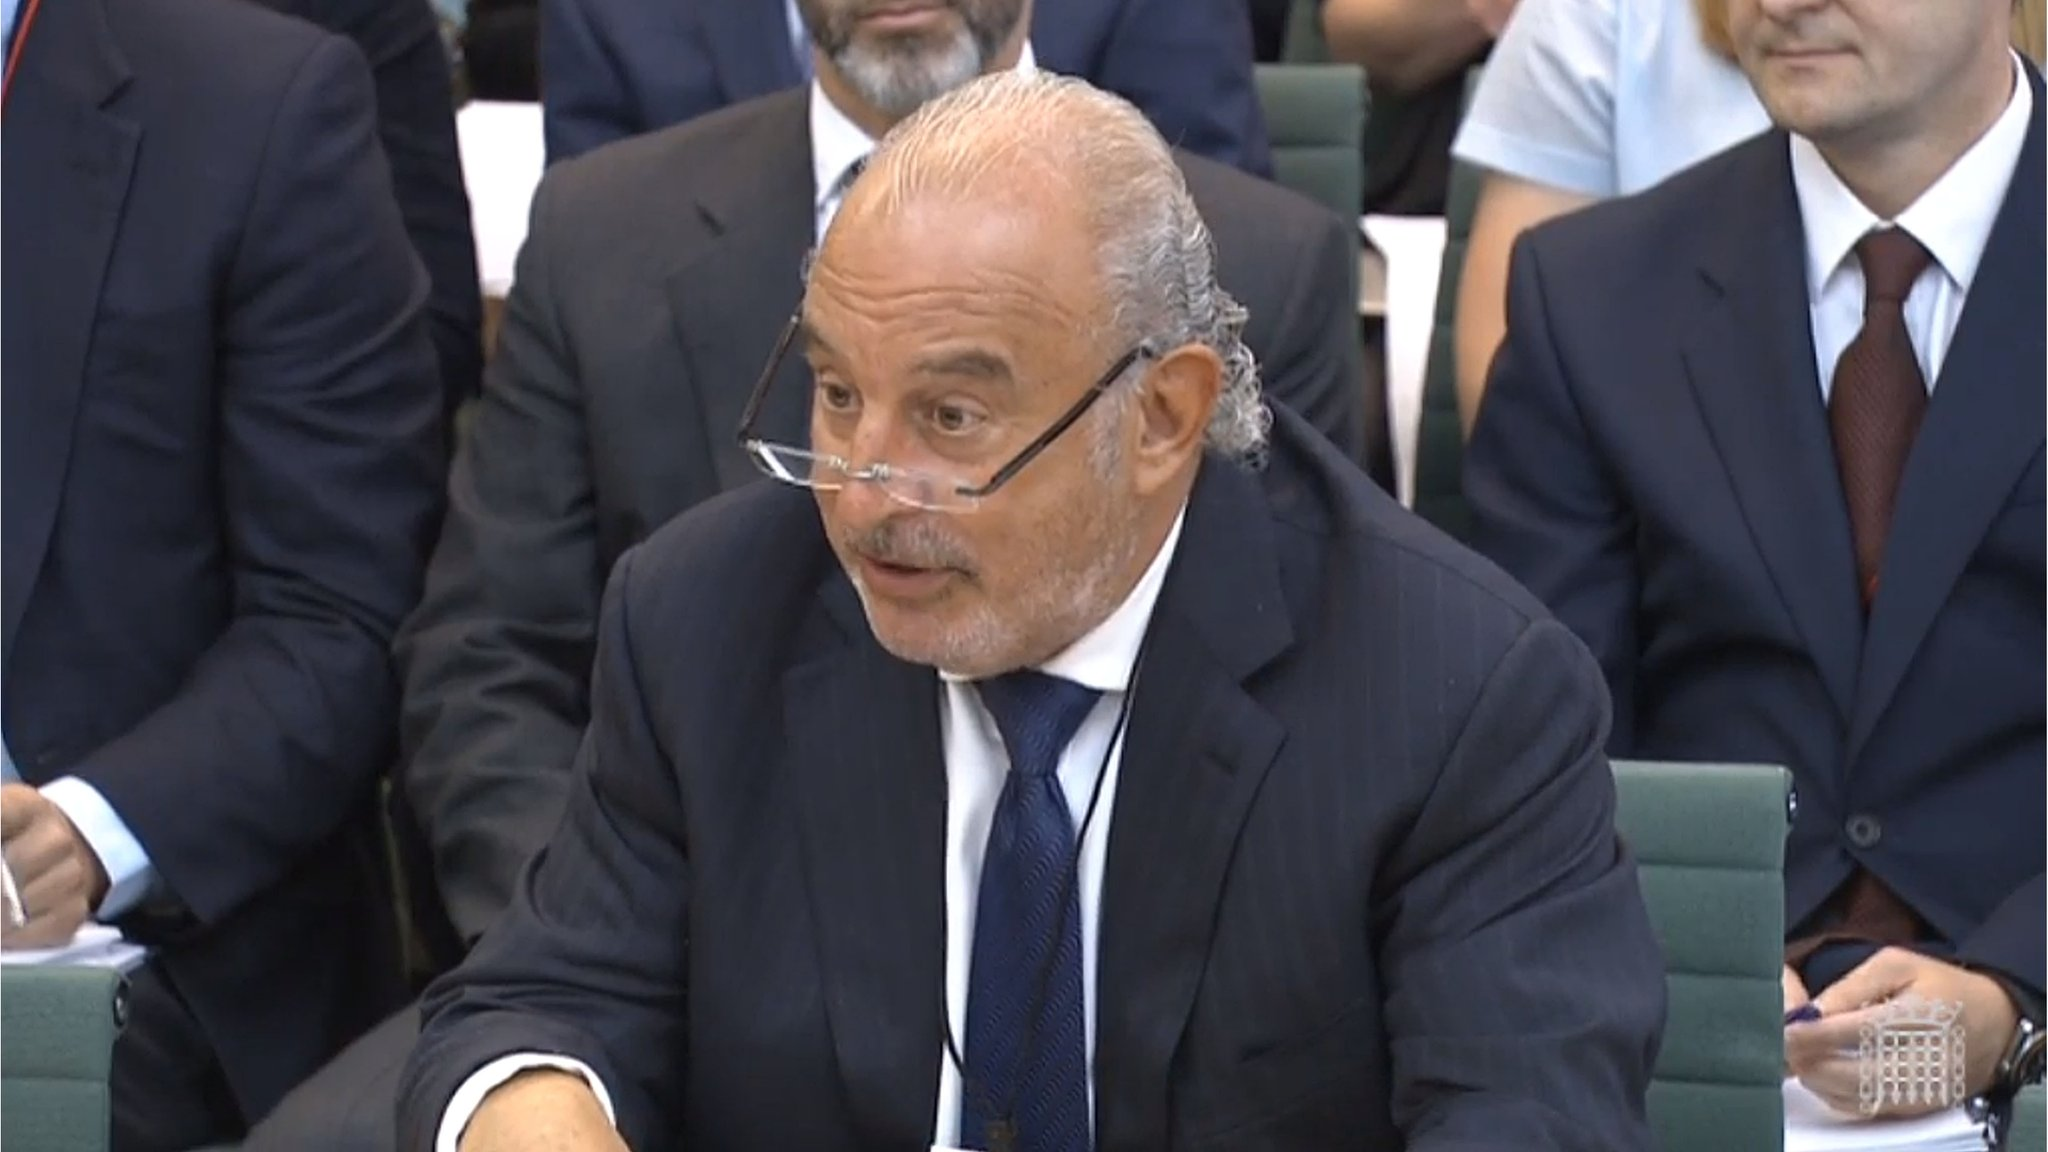 Sir Philip Green blamed by MPs for BHS collapse